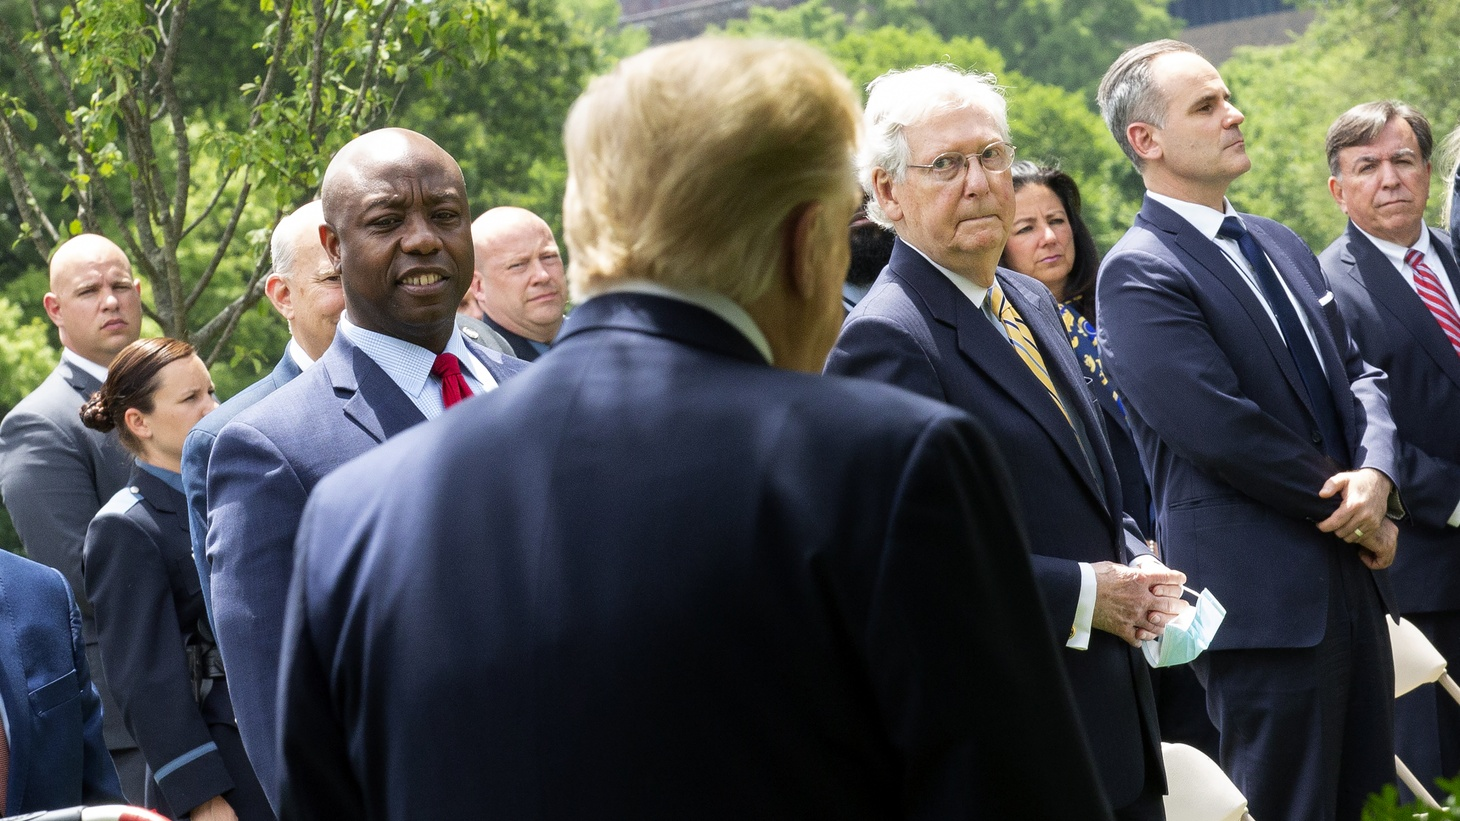 U.S. Sen. Tim Scott (R-SC), left, and Senate Majority Leader Mitch McConnell (R-KY) look on as President Trump arrives to the Rose Garden to sign an Executive Order on Safe Policing for Safe Communities at the White House in Washington D.C. on Tuesday, June 16, 2020.